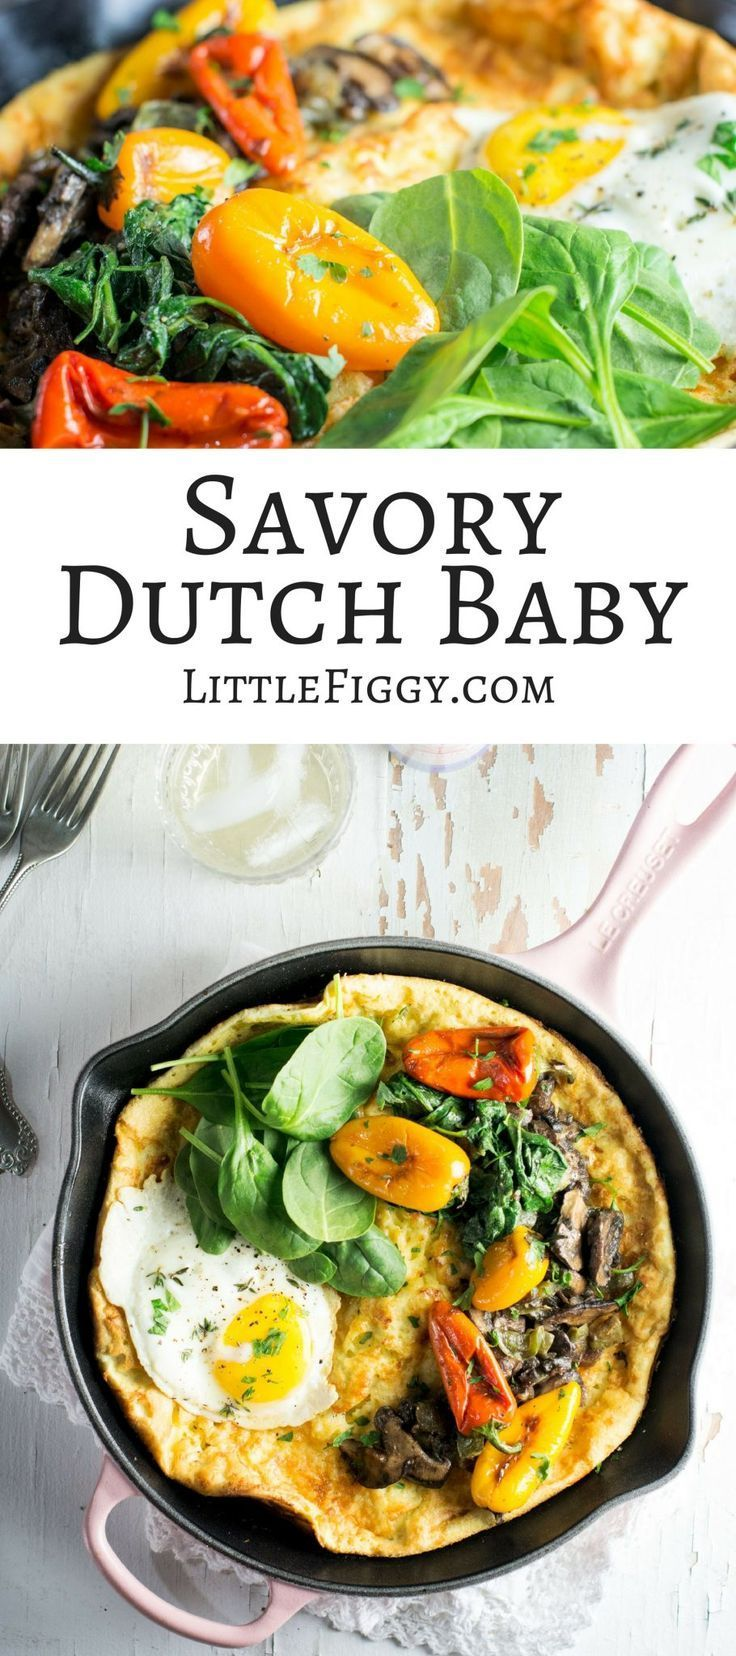 Savory Dutch Baby, perfect for an easy to make brunch, made in my favorite @LeCreuset skillet! Pair the dutch baby with @njoypampelonne! #ad ##LeCreusetLove #EnjoyPampelonne via @LittleFiggyFood